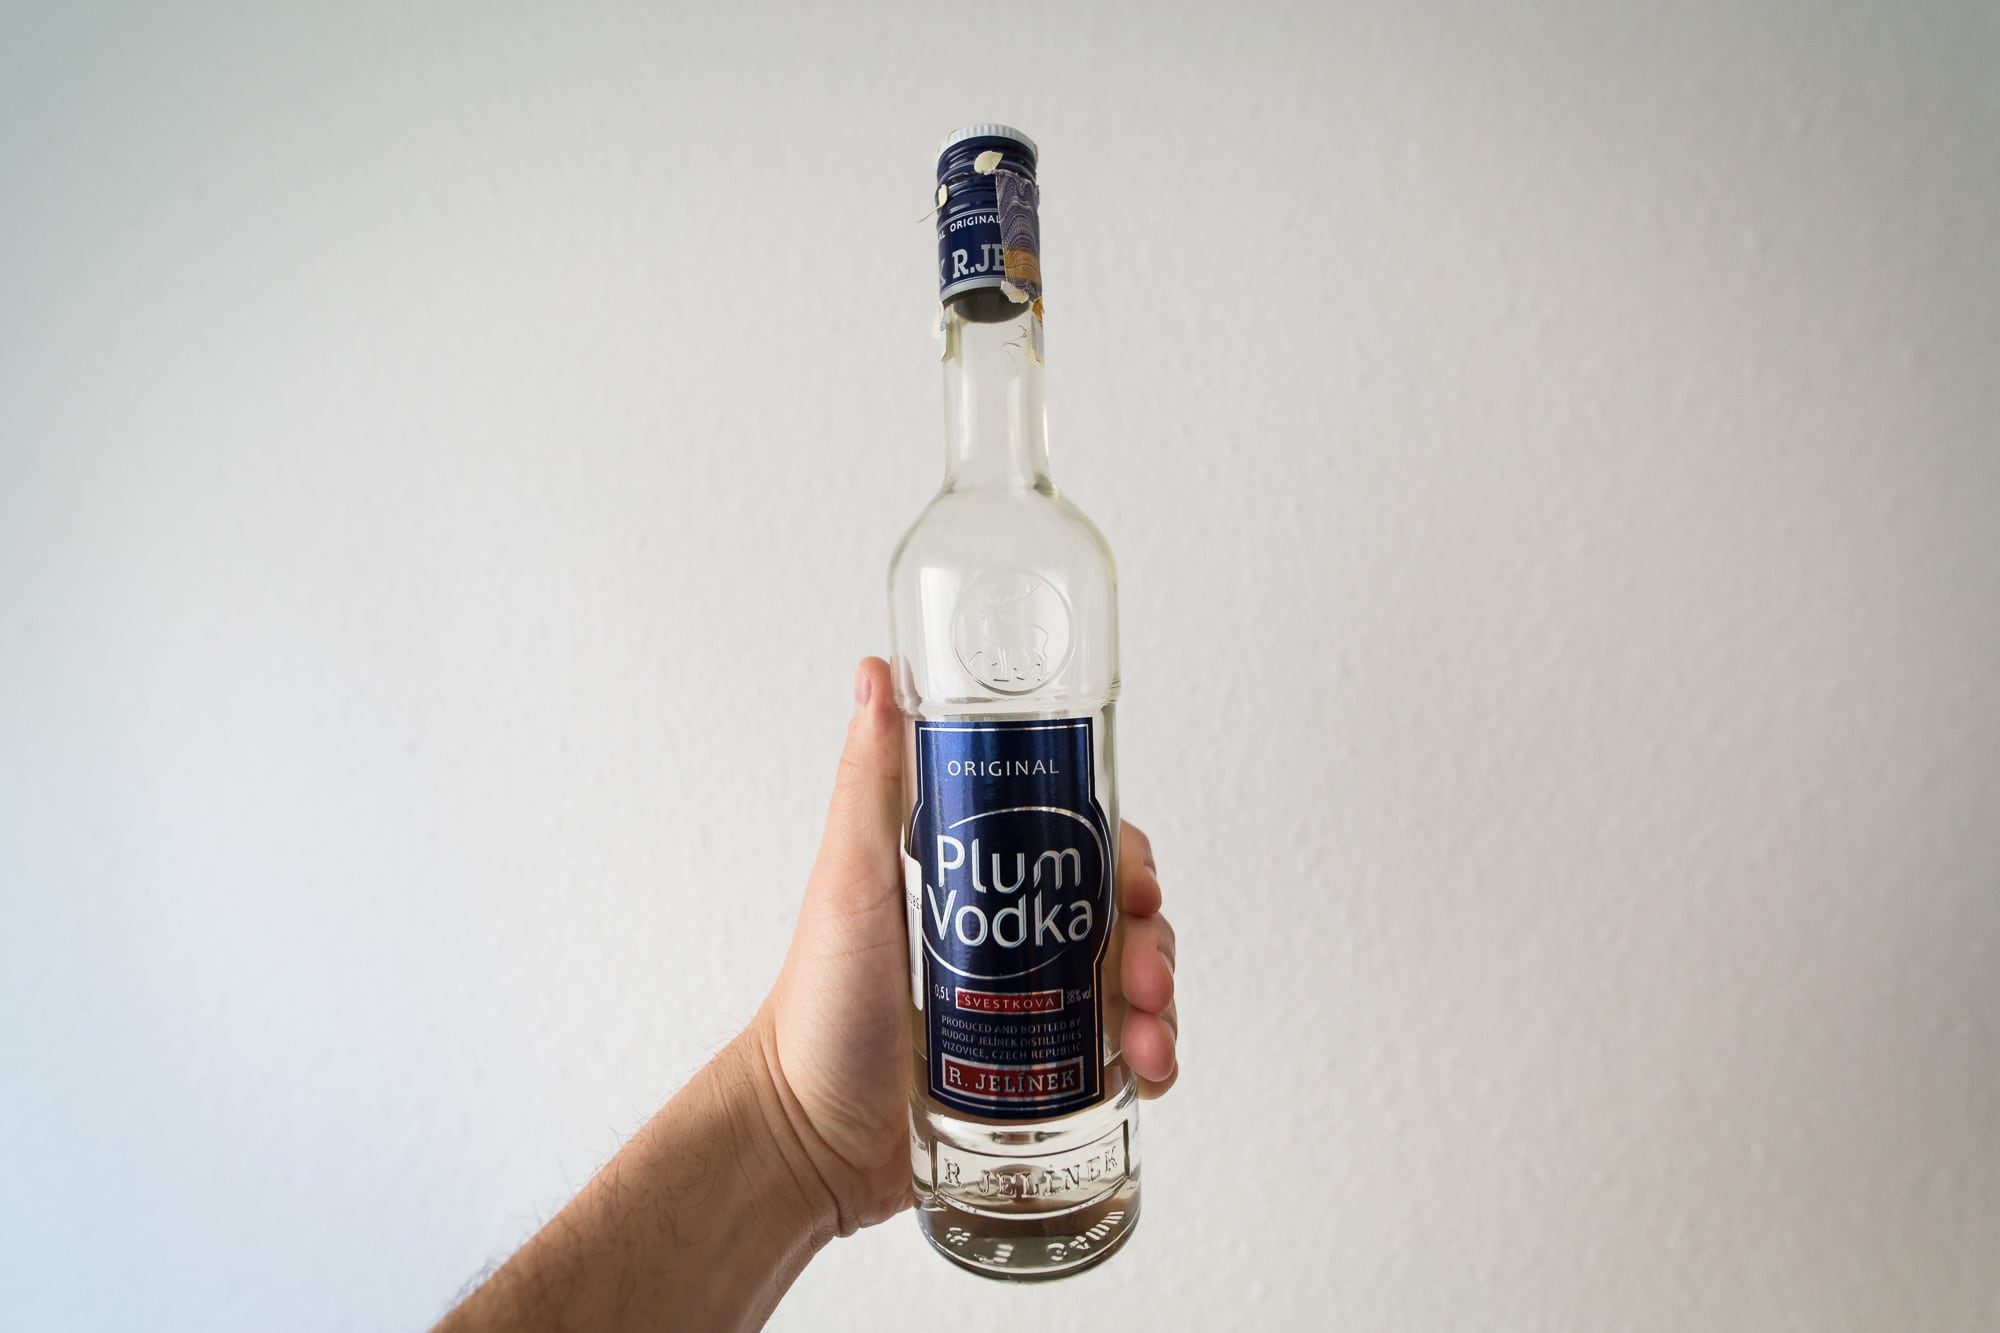 R. Jelinek Plum vodka